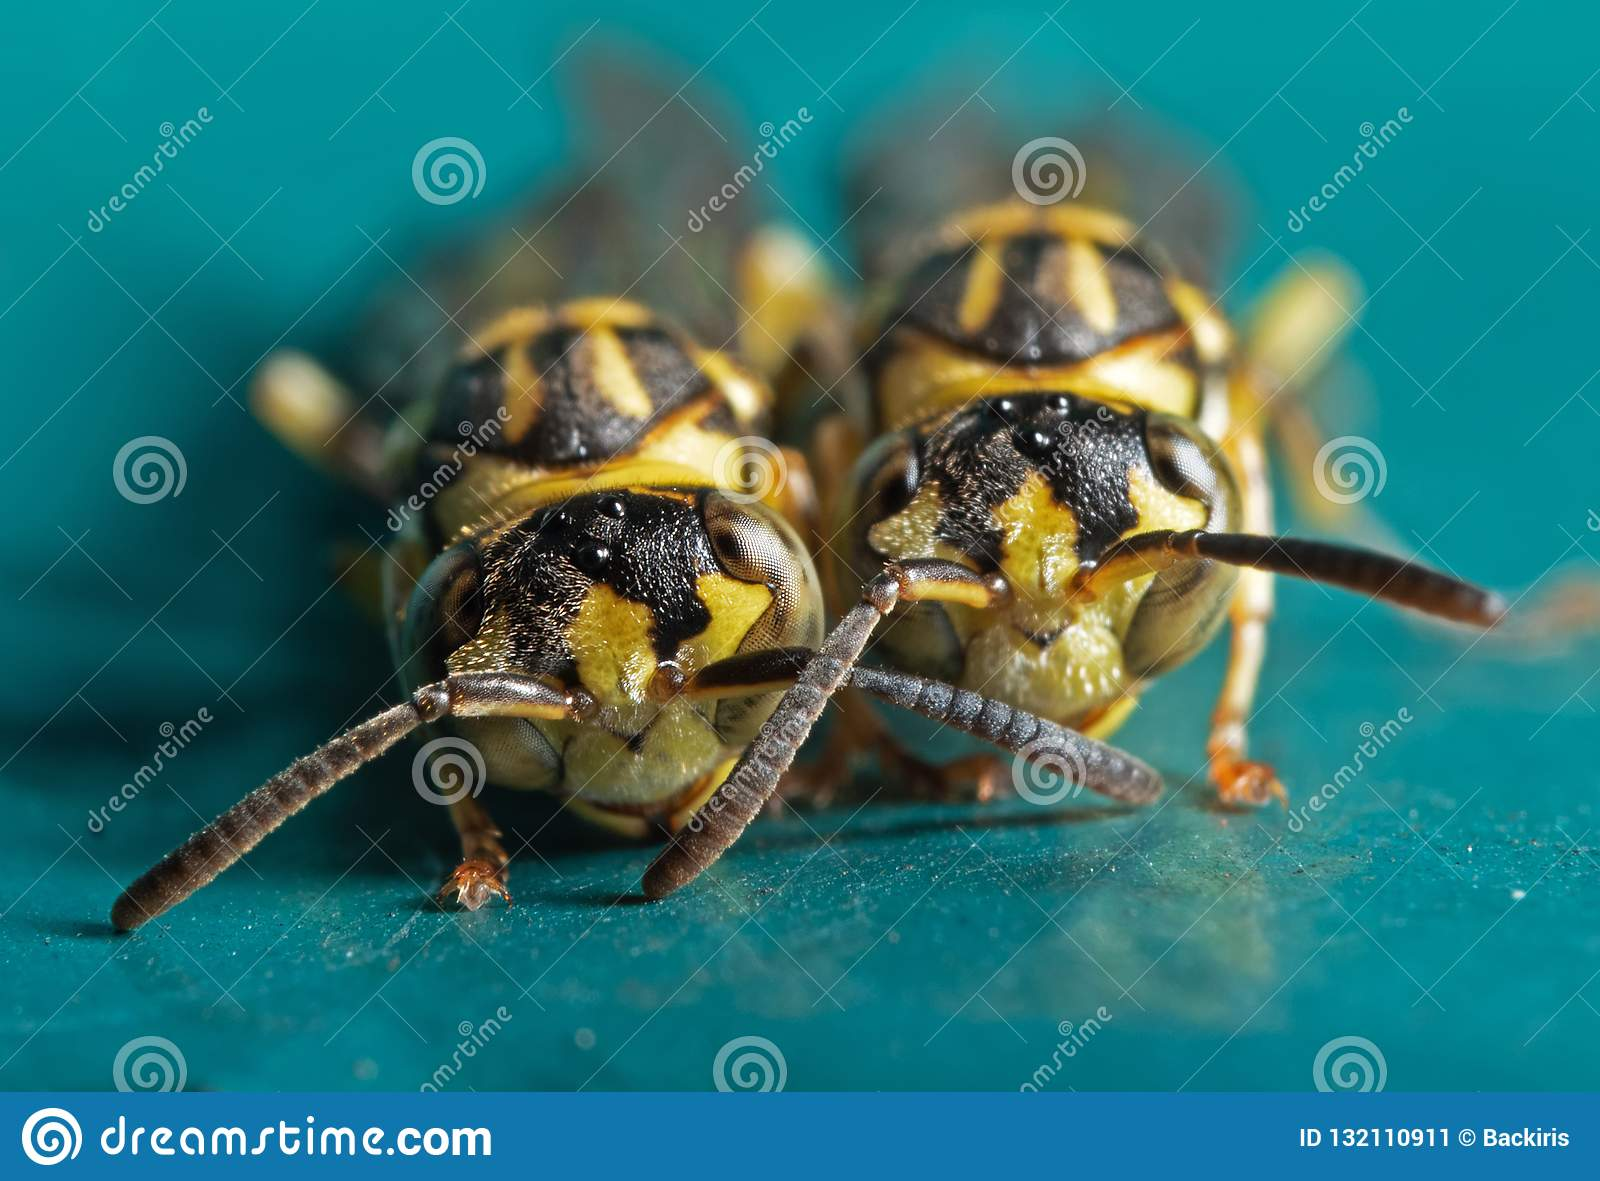 Macro Photo of Two Wasps on Blue Green Metal Material